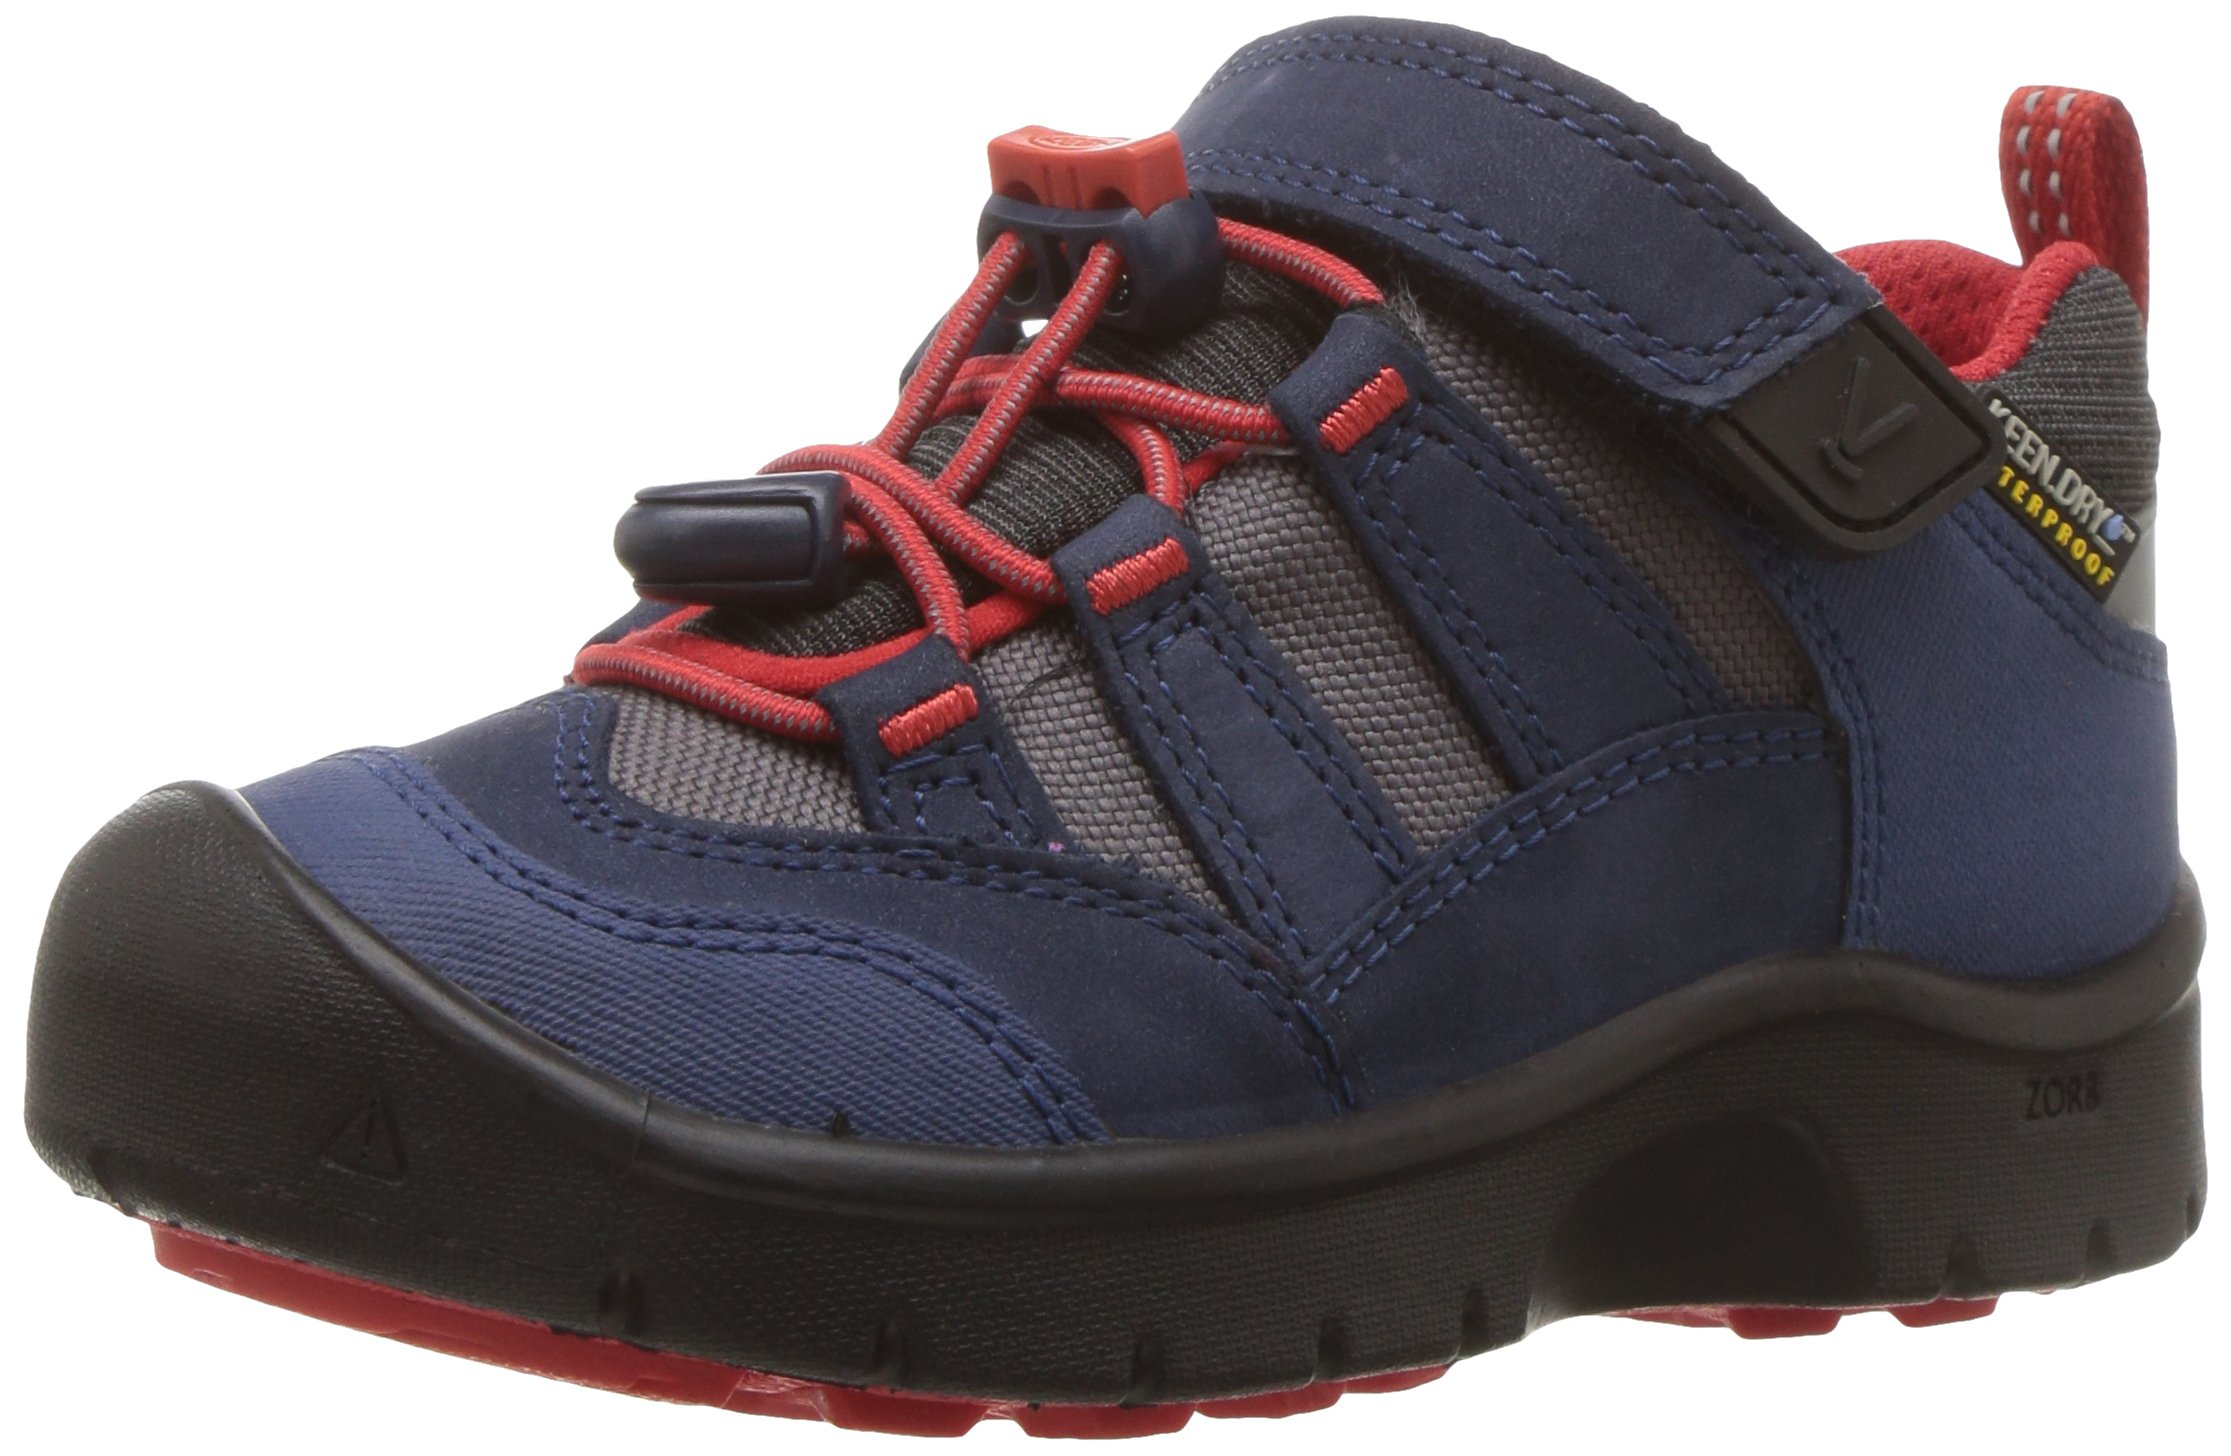 KEEN Kids' Hikeport WP Hiking Shoe,Dress Blues/Fiery Red,10 Toddler US Toddler